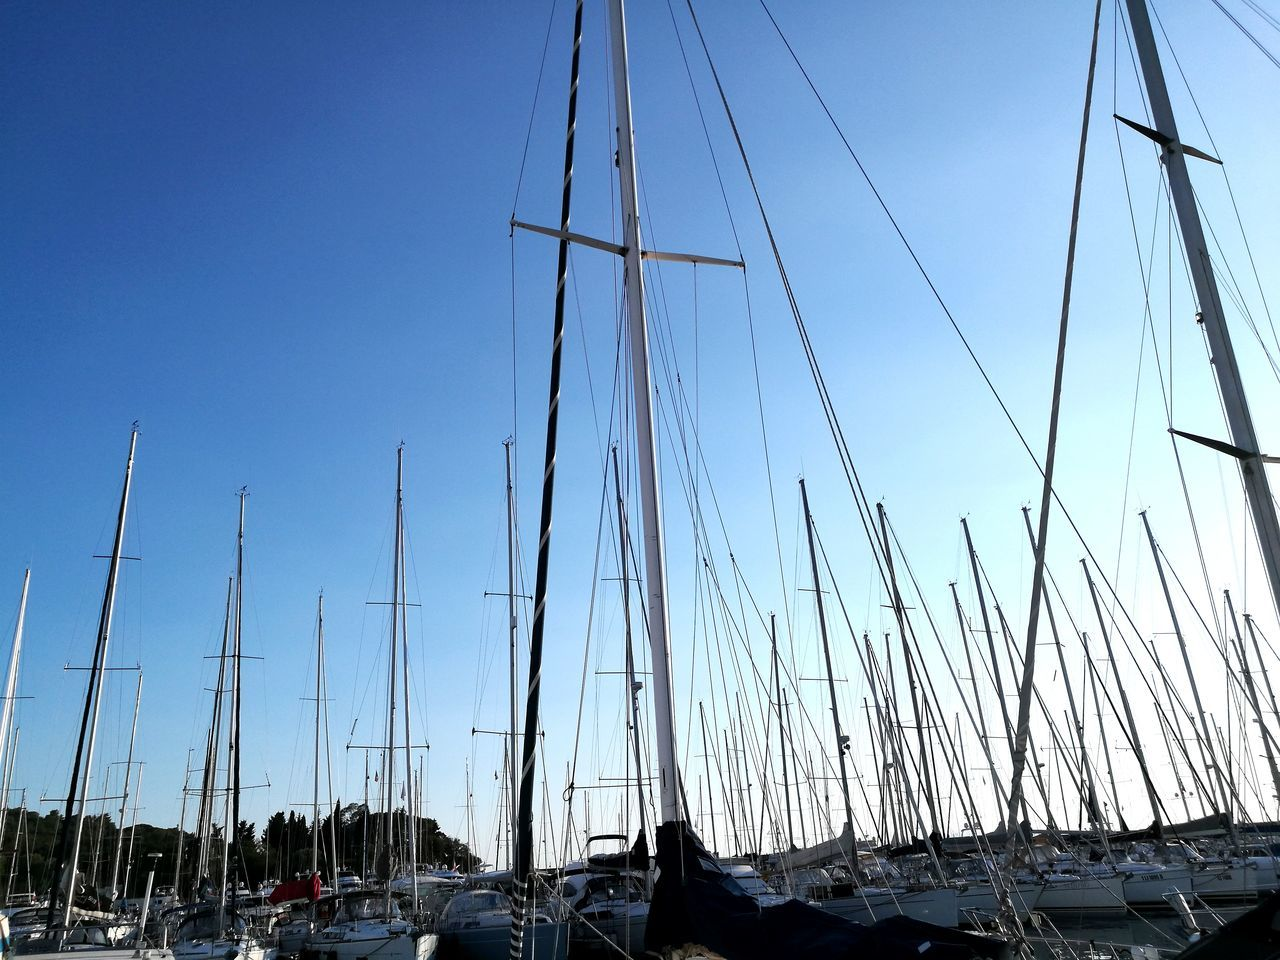 transportation, mode of transport, mast, nautical vessel, outdoors, sky, no people, moored, car, clear sky, land vehicle, blue, day, nature, low angle view, sailboat, built structure, travel destinations, scenics, harbor, building exterior, architecture